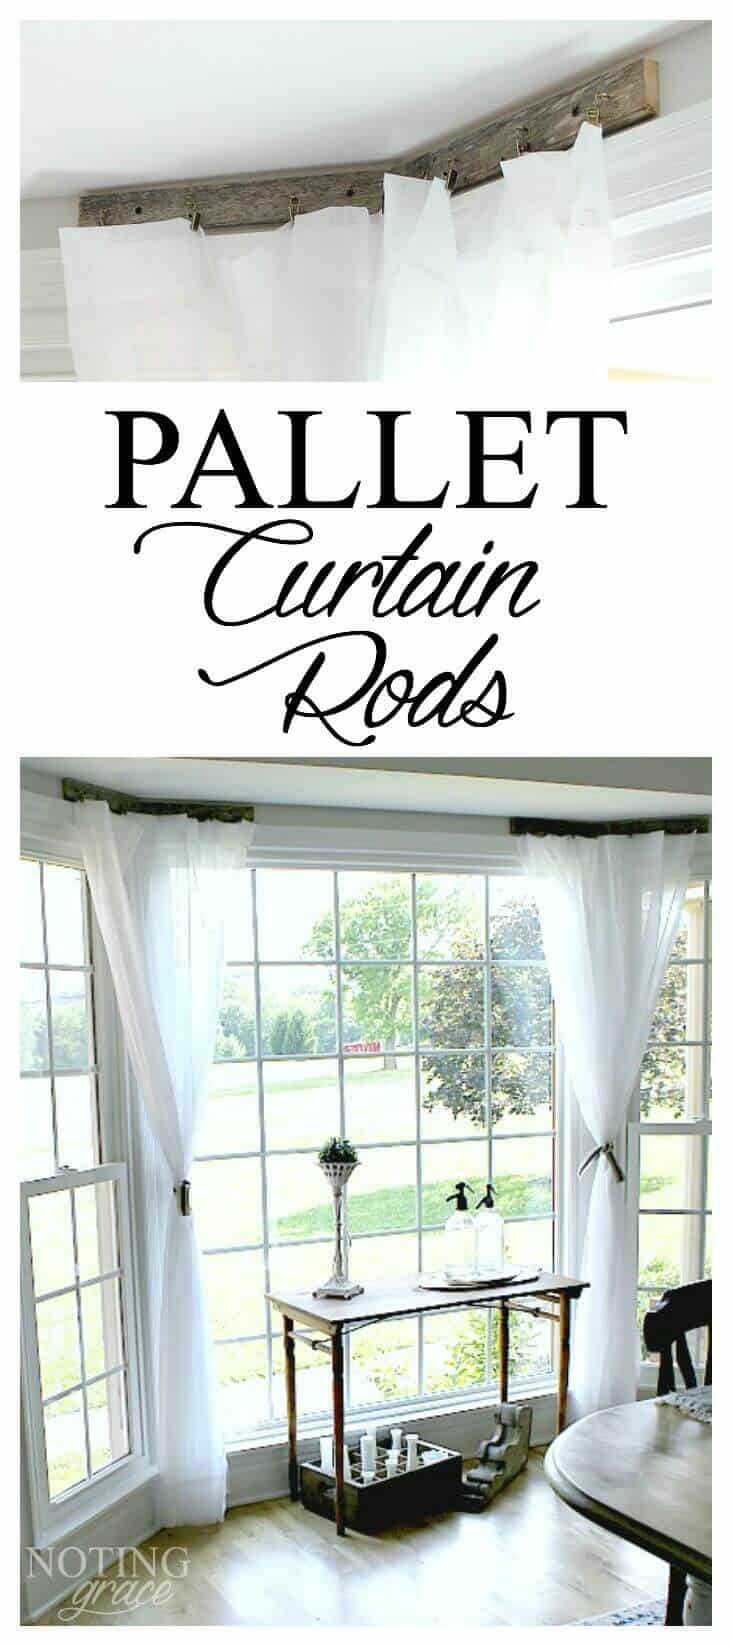 Pallet Curtain Rods   I Needed A Solution For My Bay Window And Came Up With